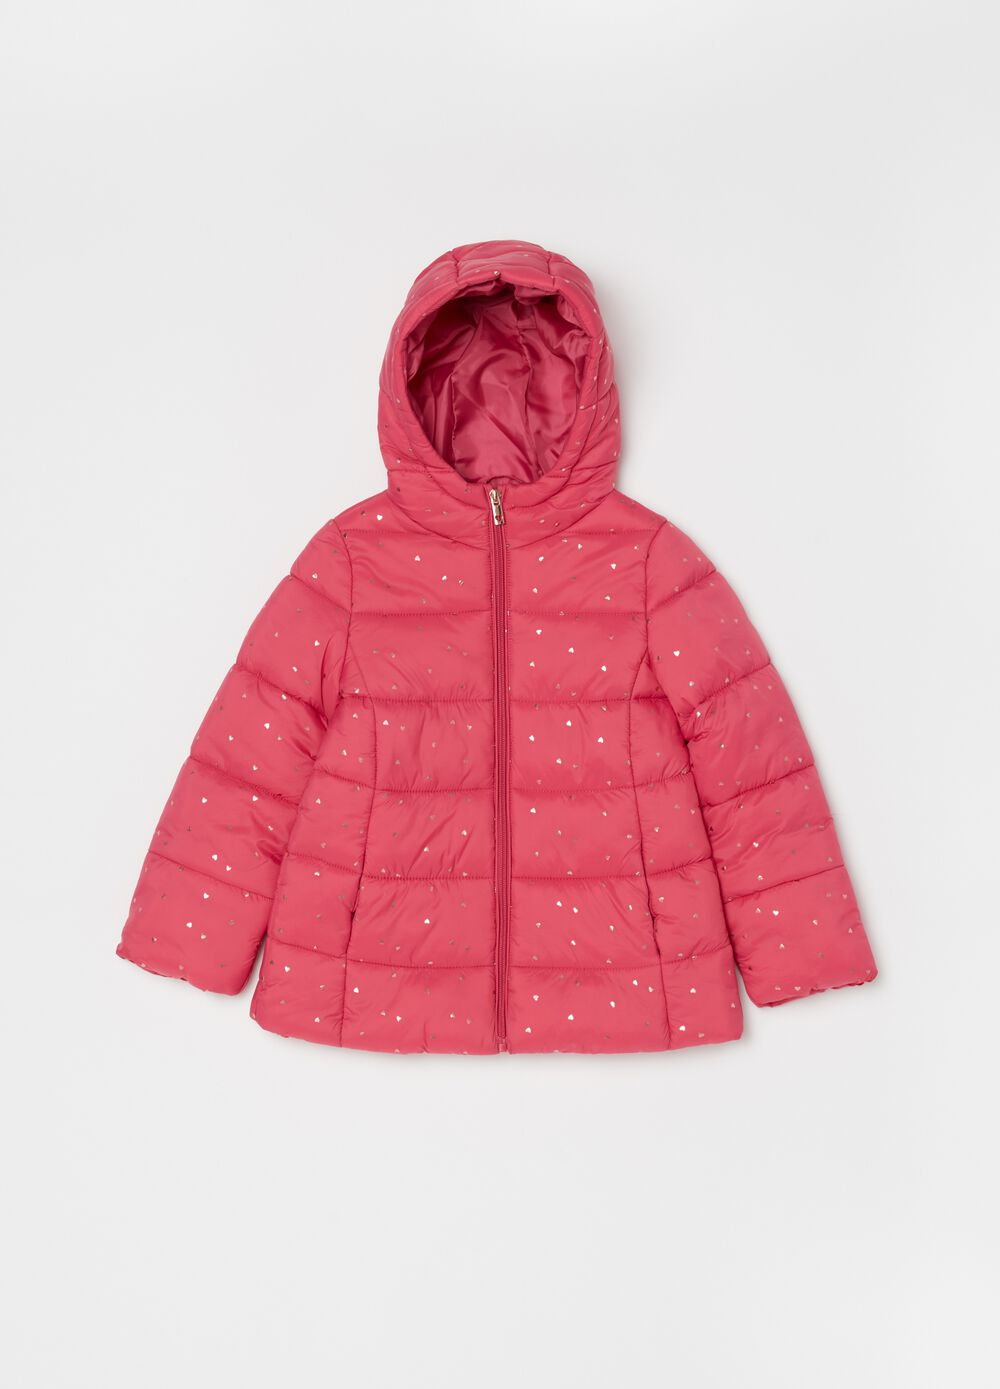 Padded and quilted jacket with high collar